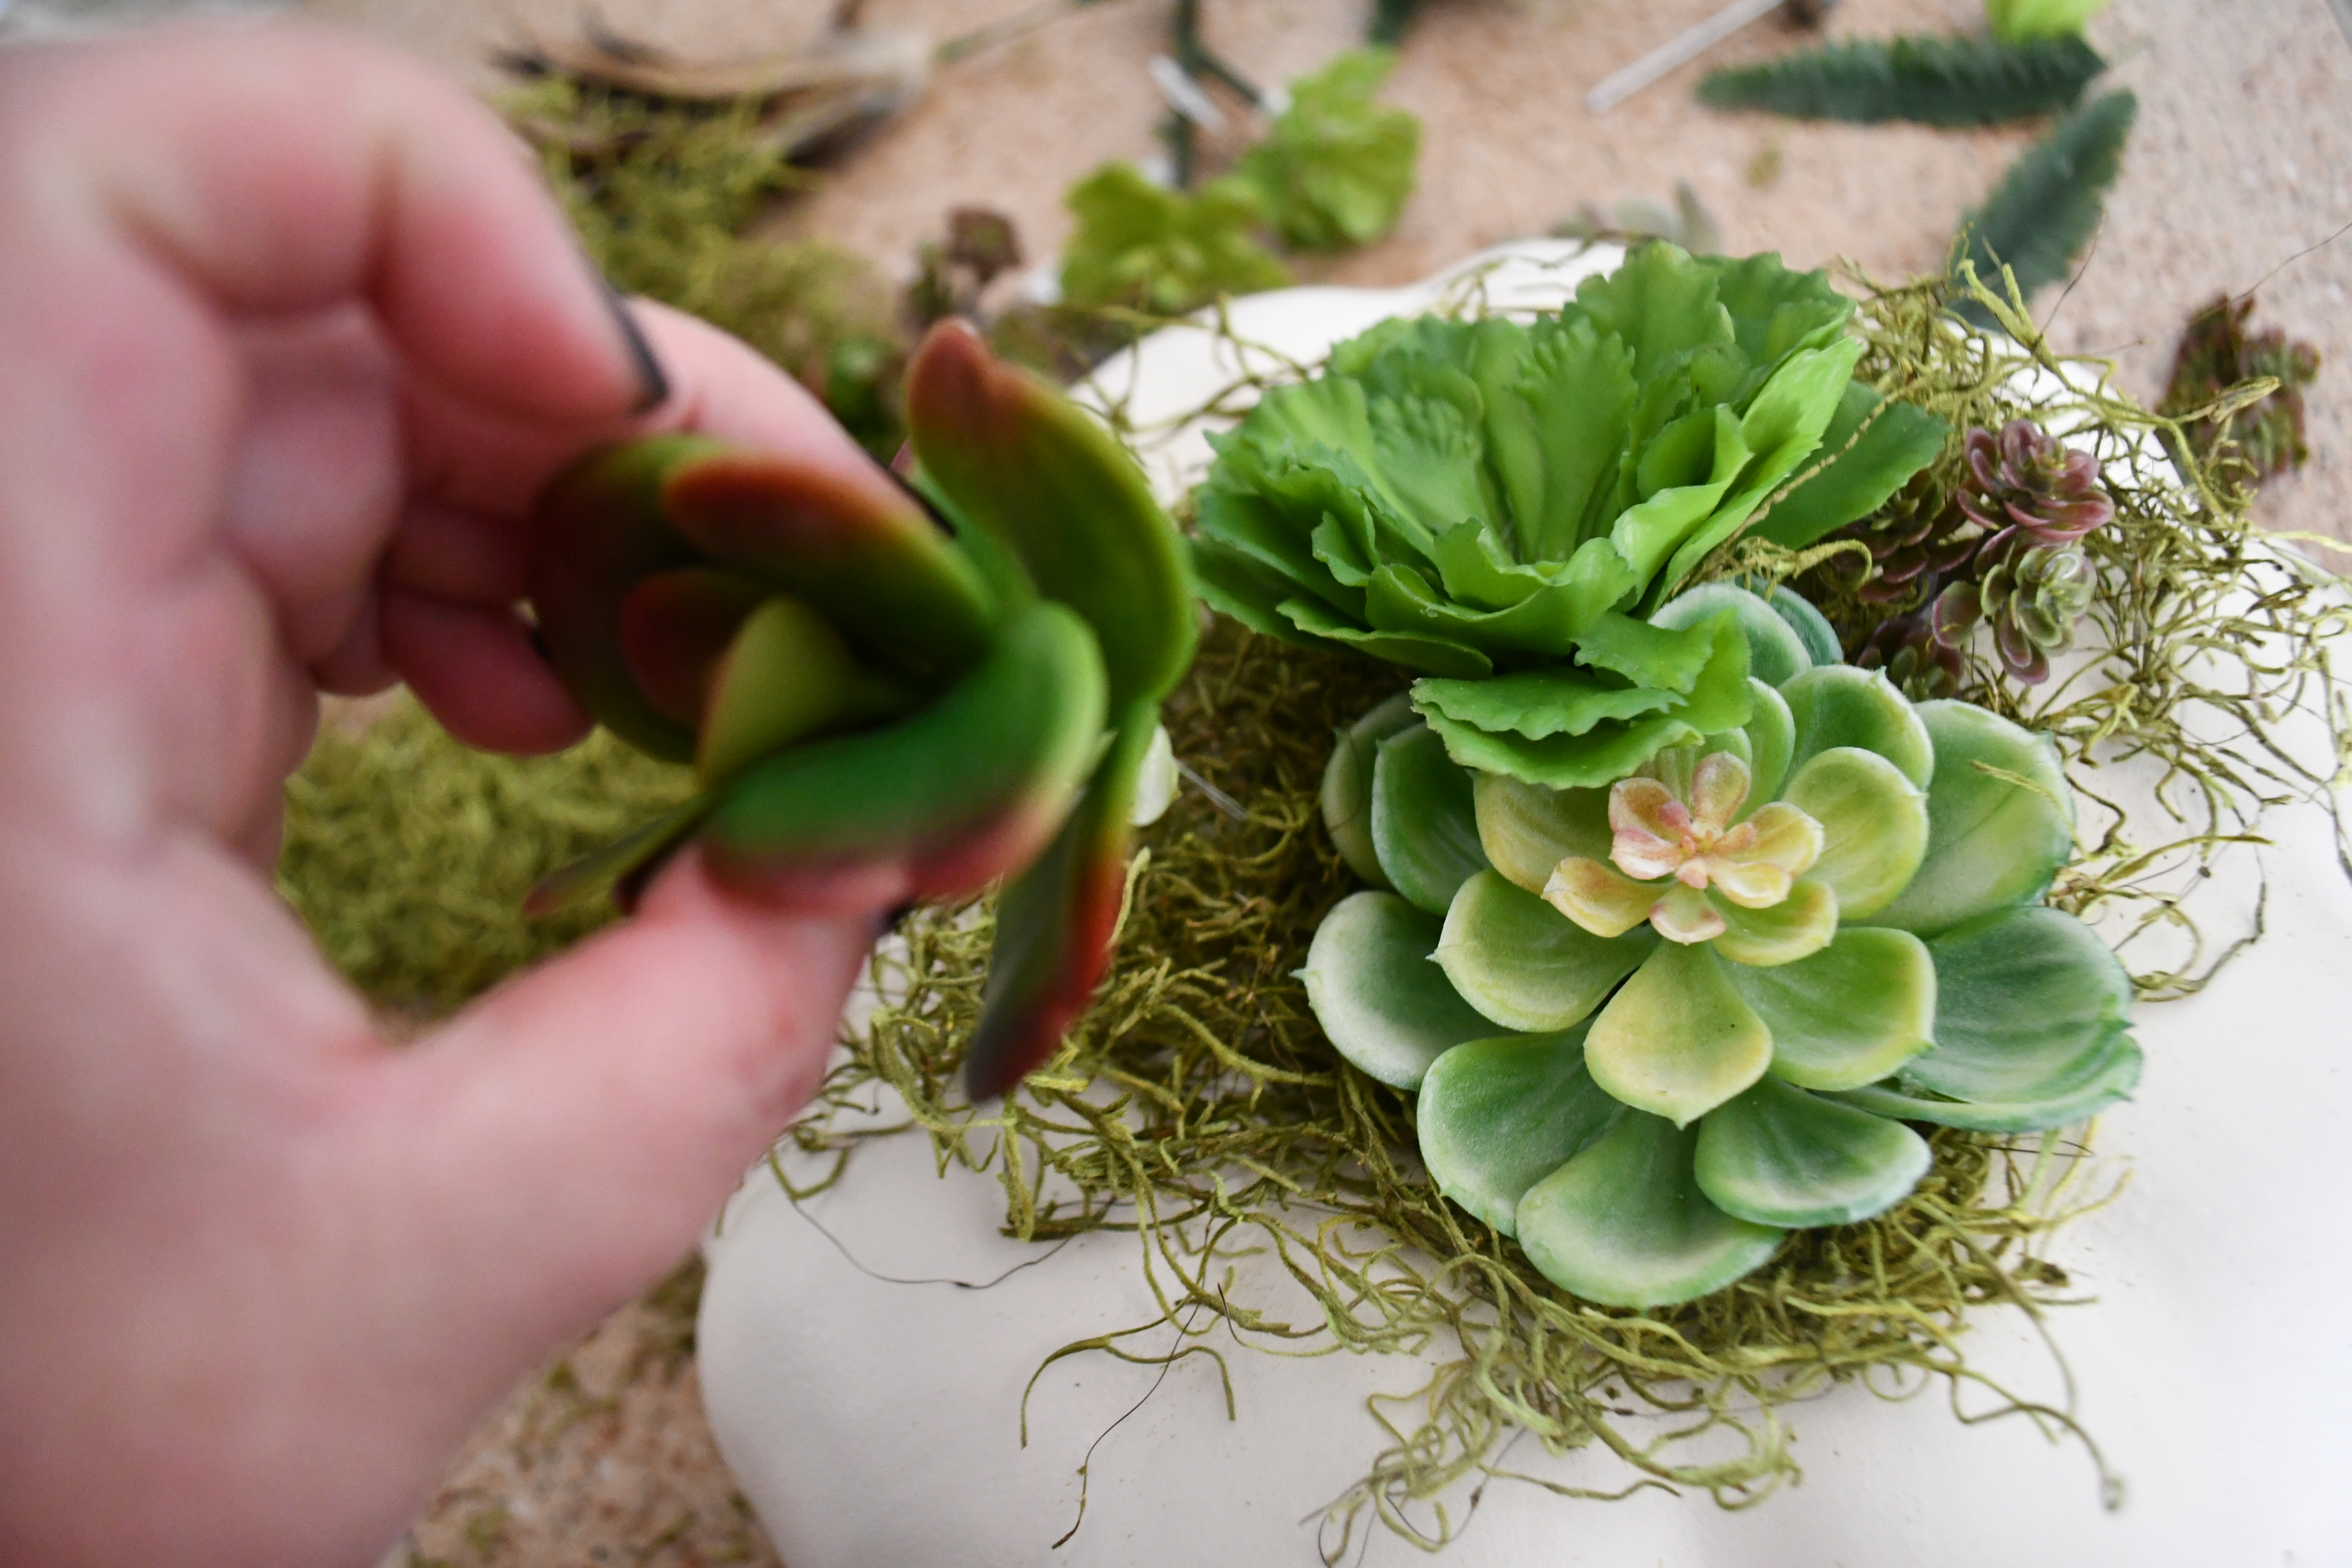 style your fall table with this DIY succulent centerpiece idea - here, adding succulents to the moss